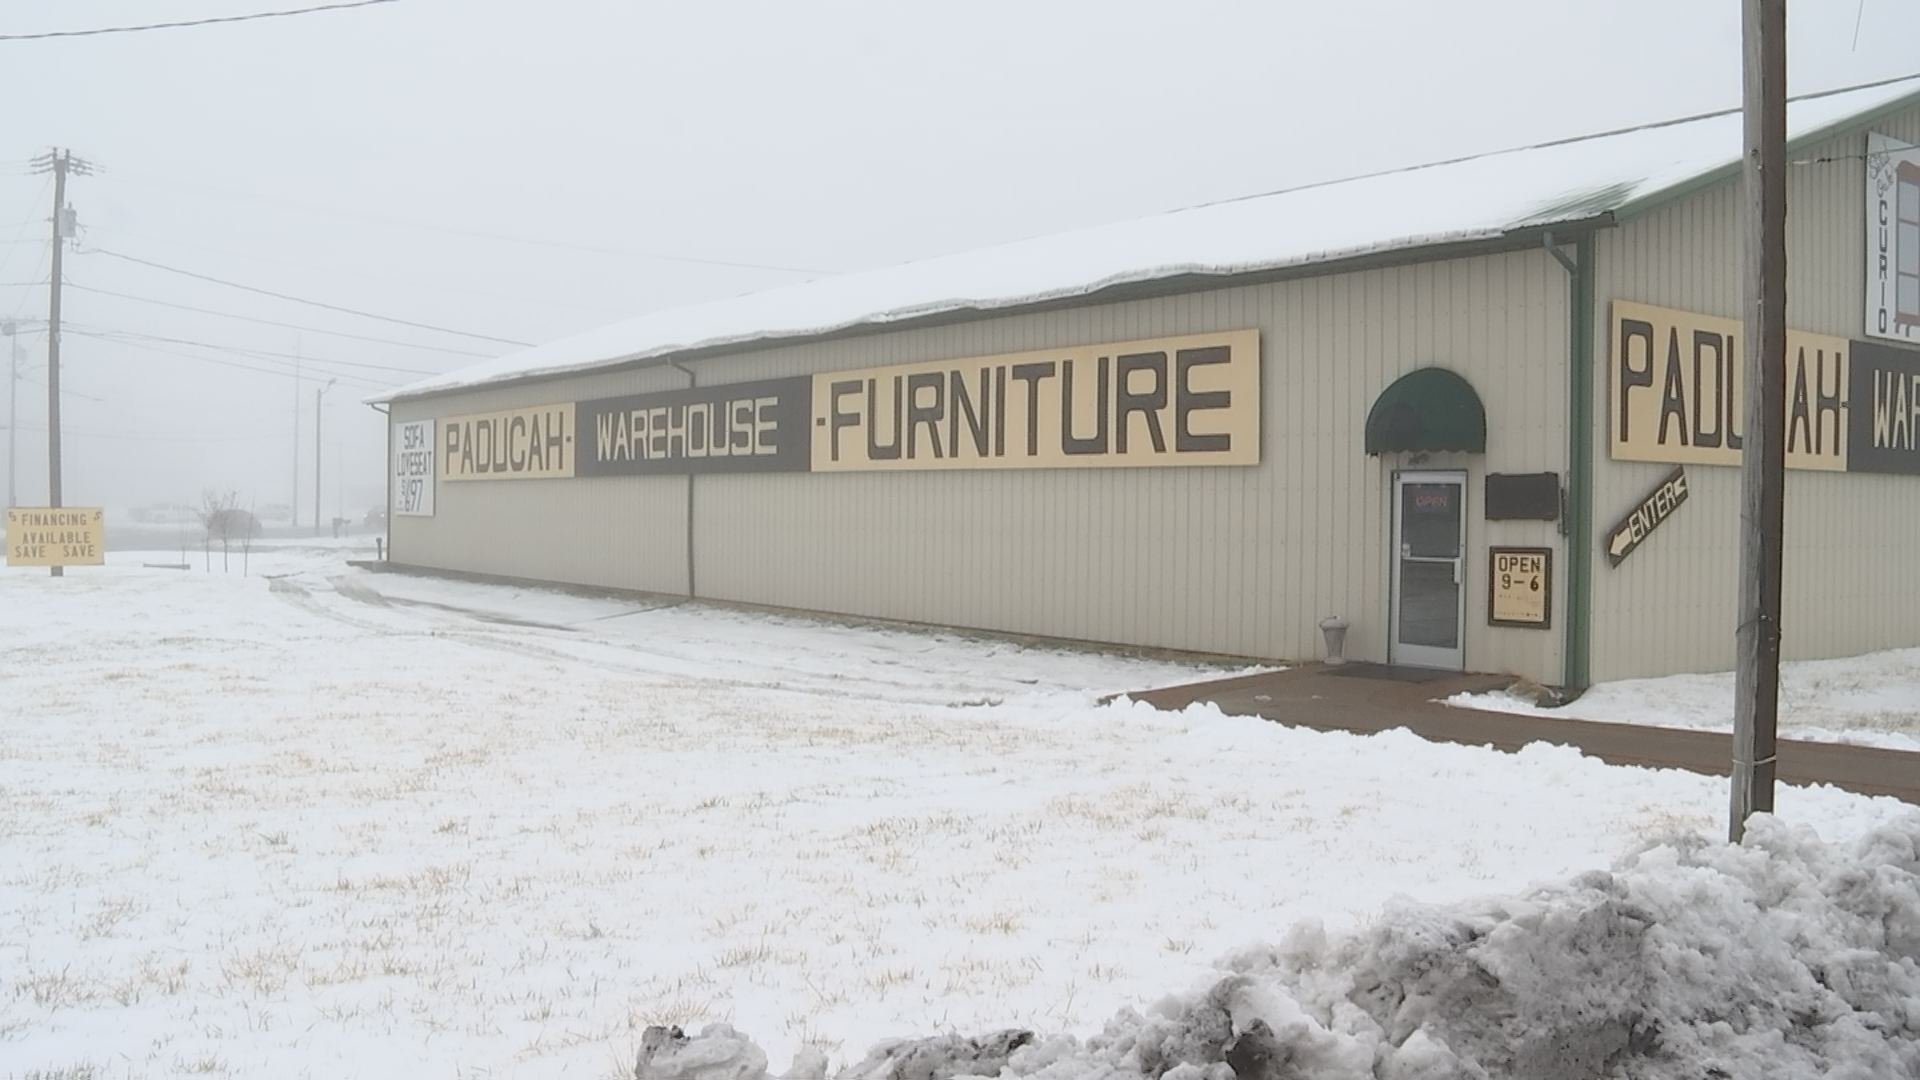 Furniture Stores In Paducah Ky Not Enough Snow For Free Furniture At Paducah  Warehouse